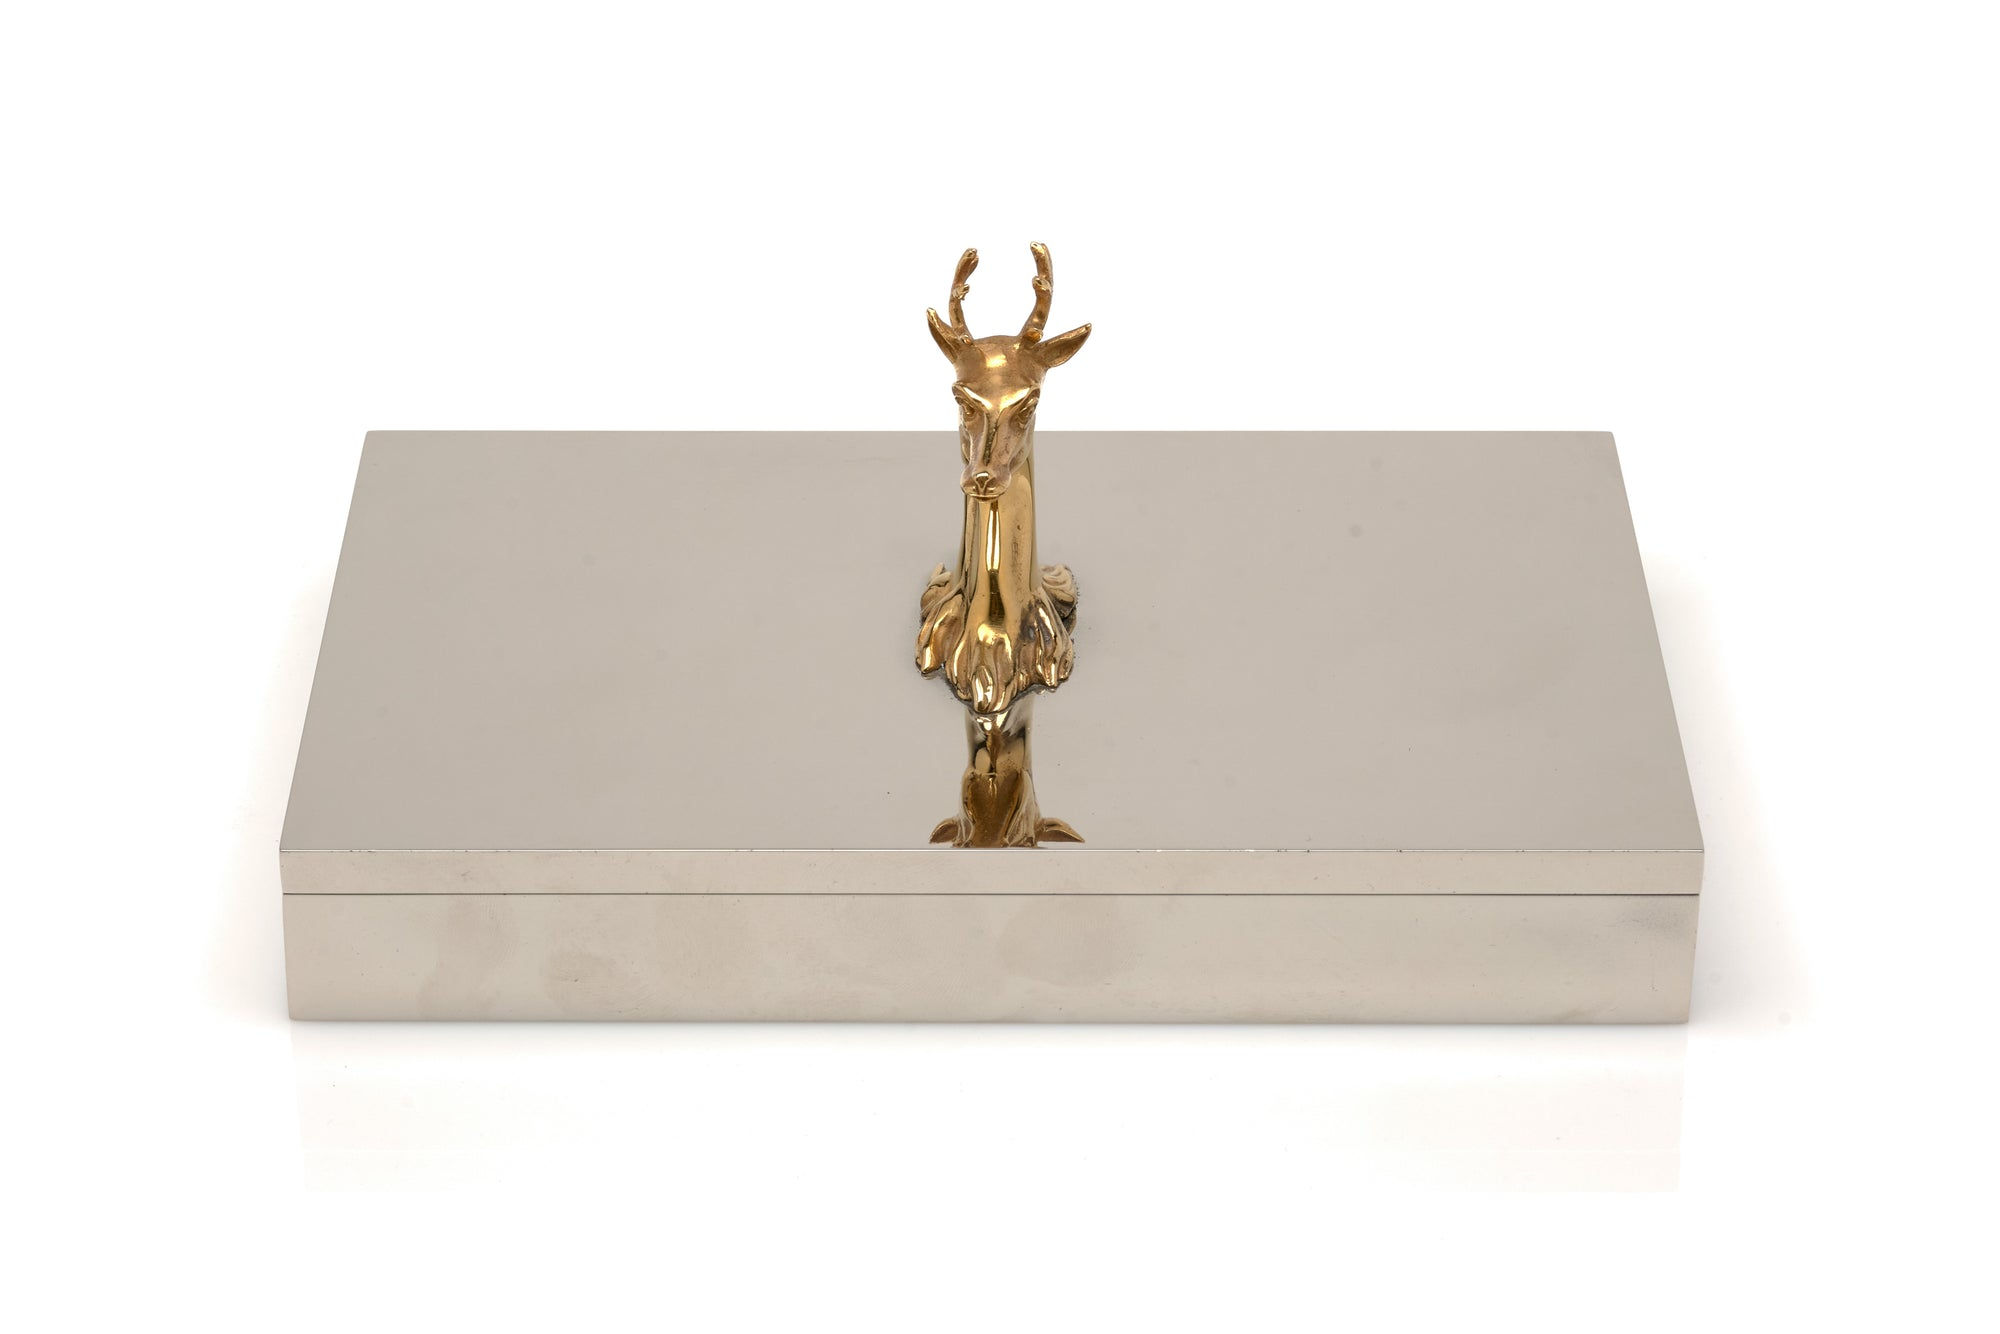 Hermes Deer Box